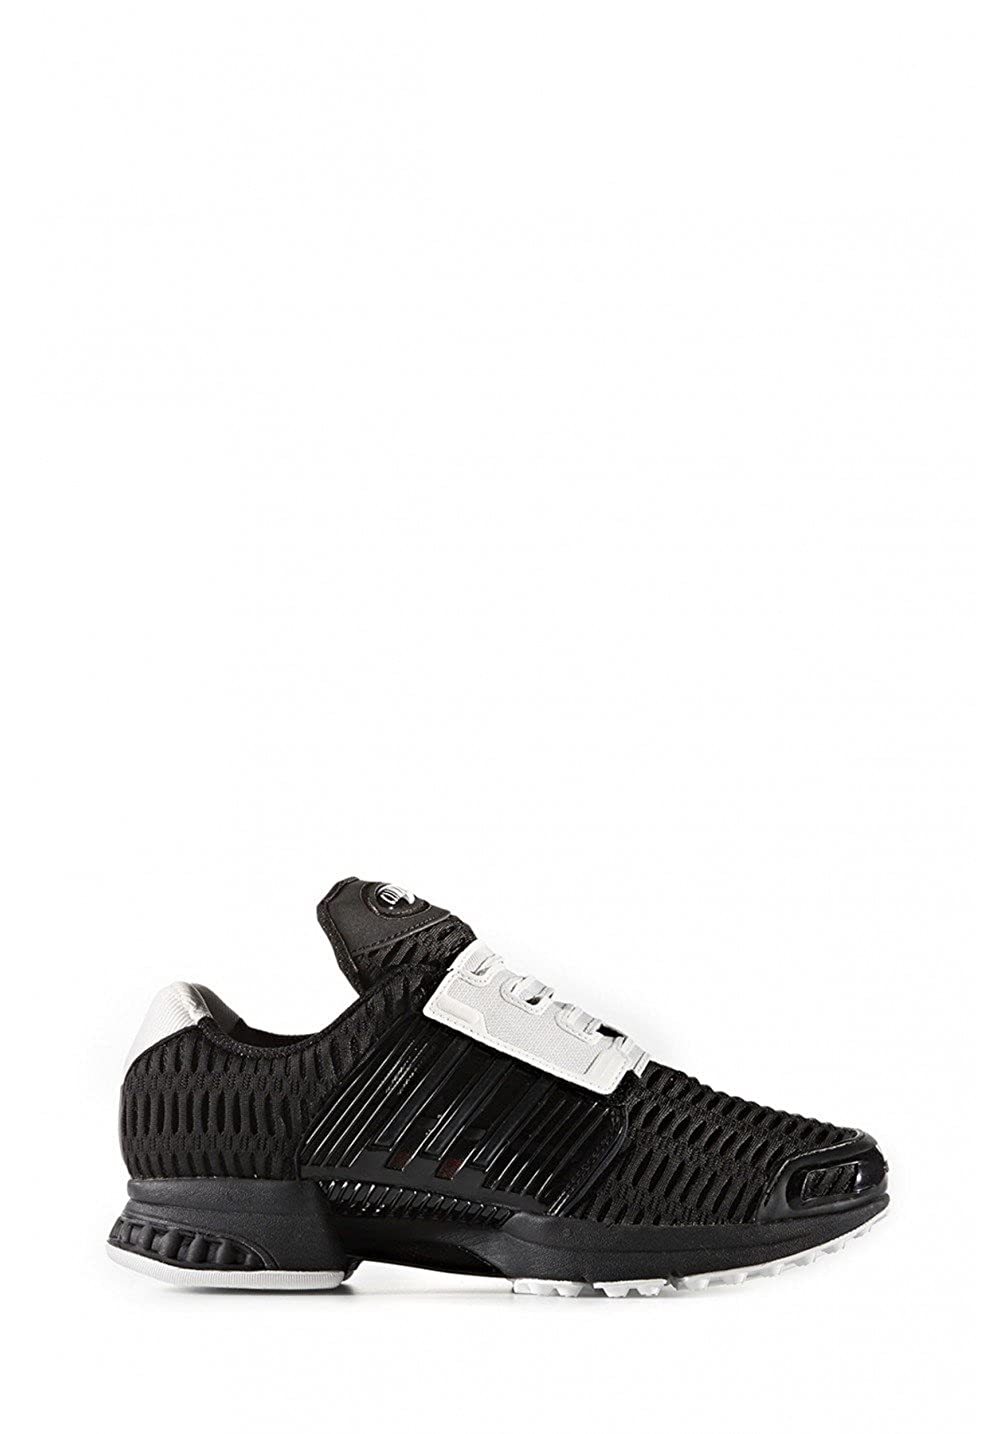 adidas Climacool 1 CMF Men's Shoes CBLACKCBLACKVINWHT